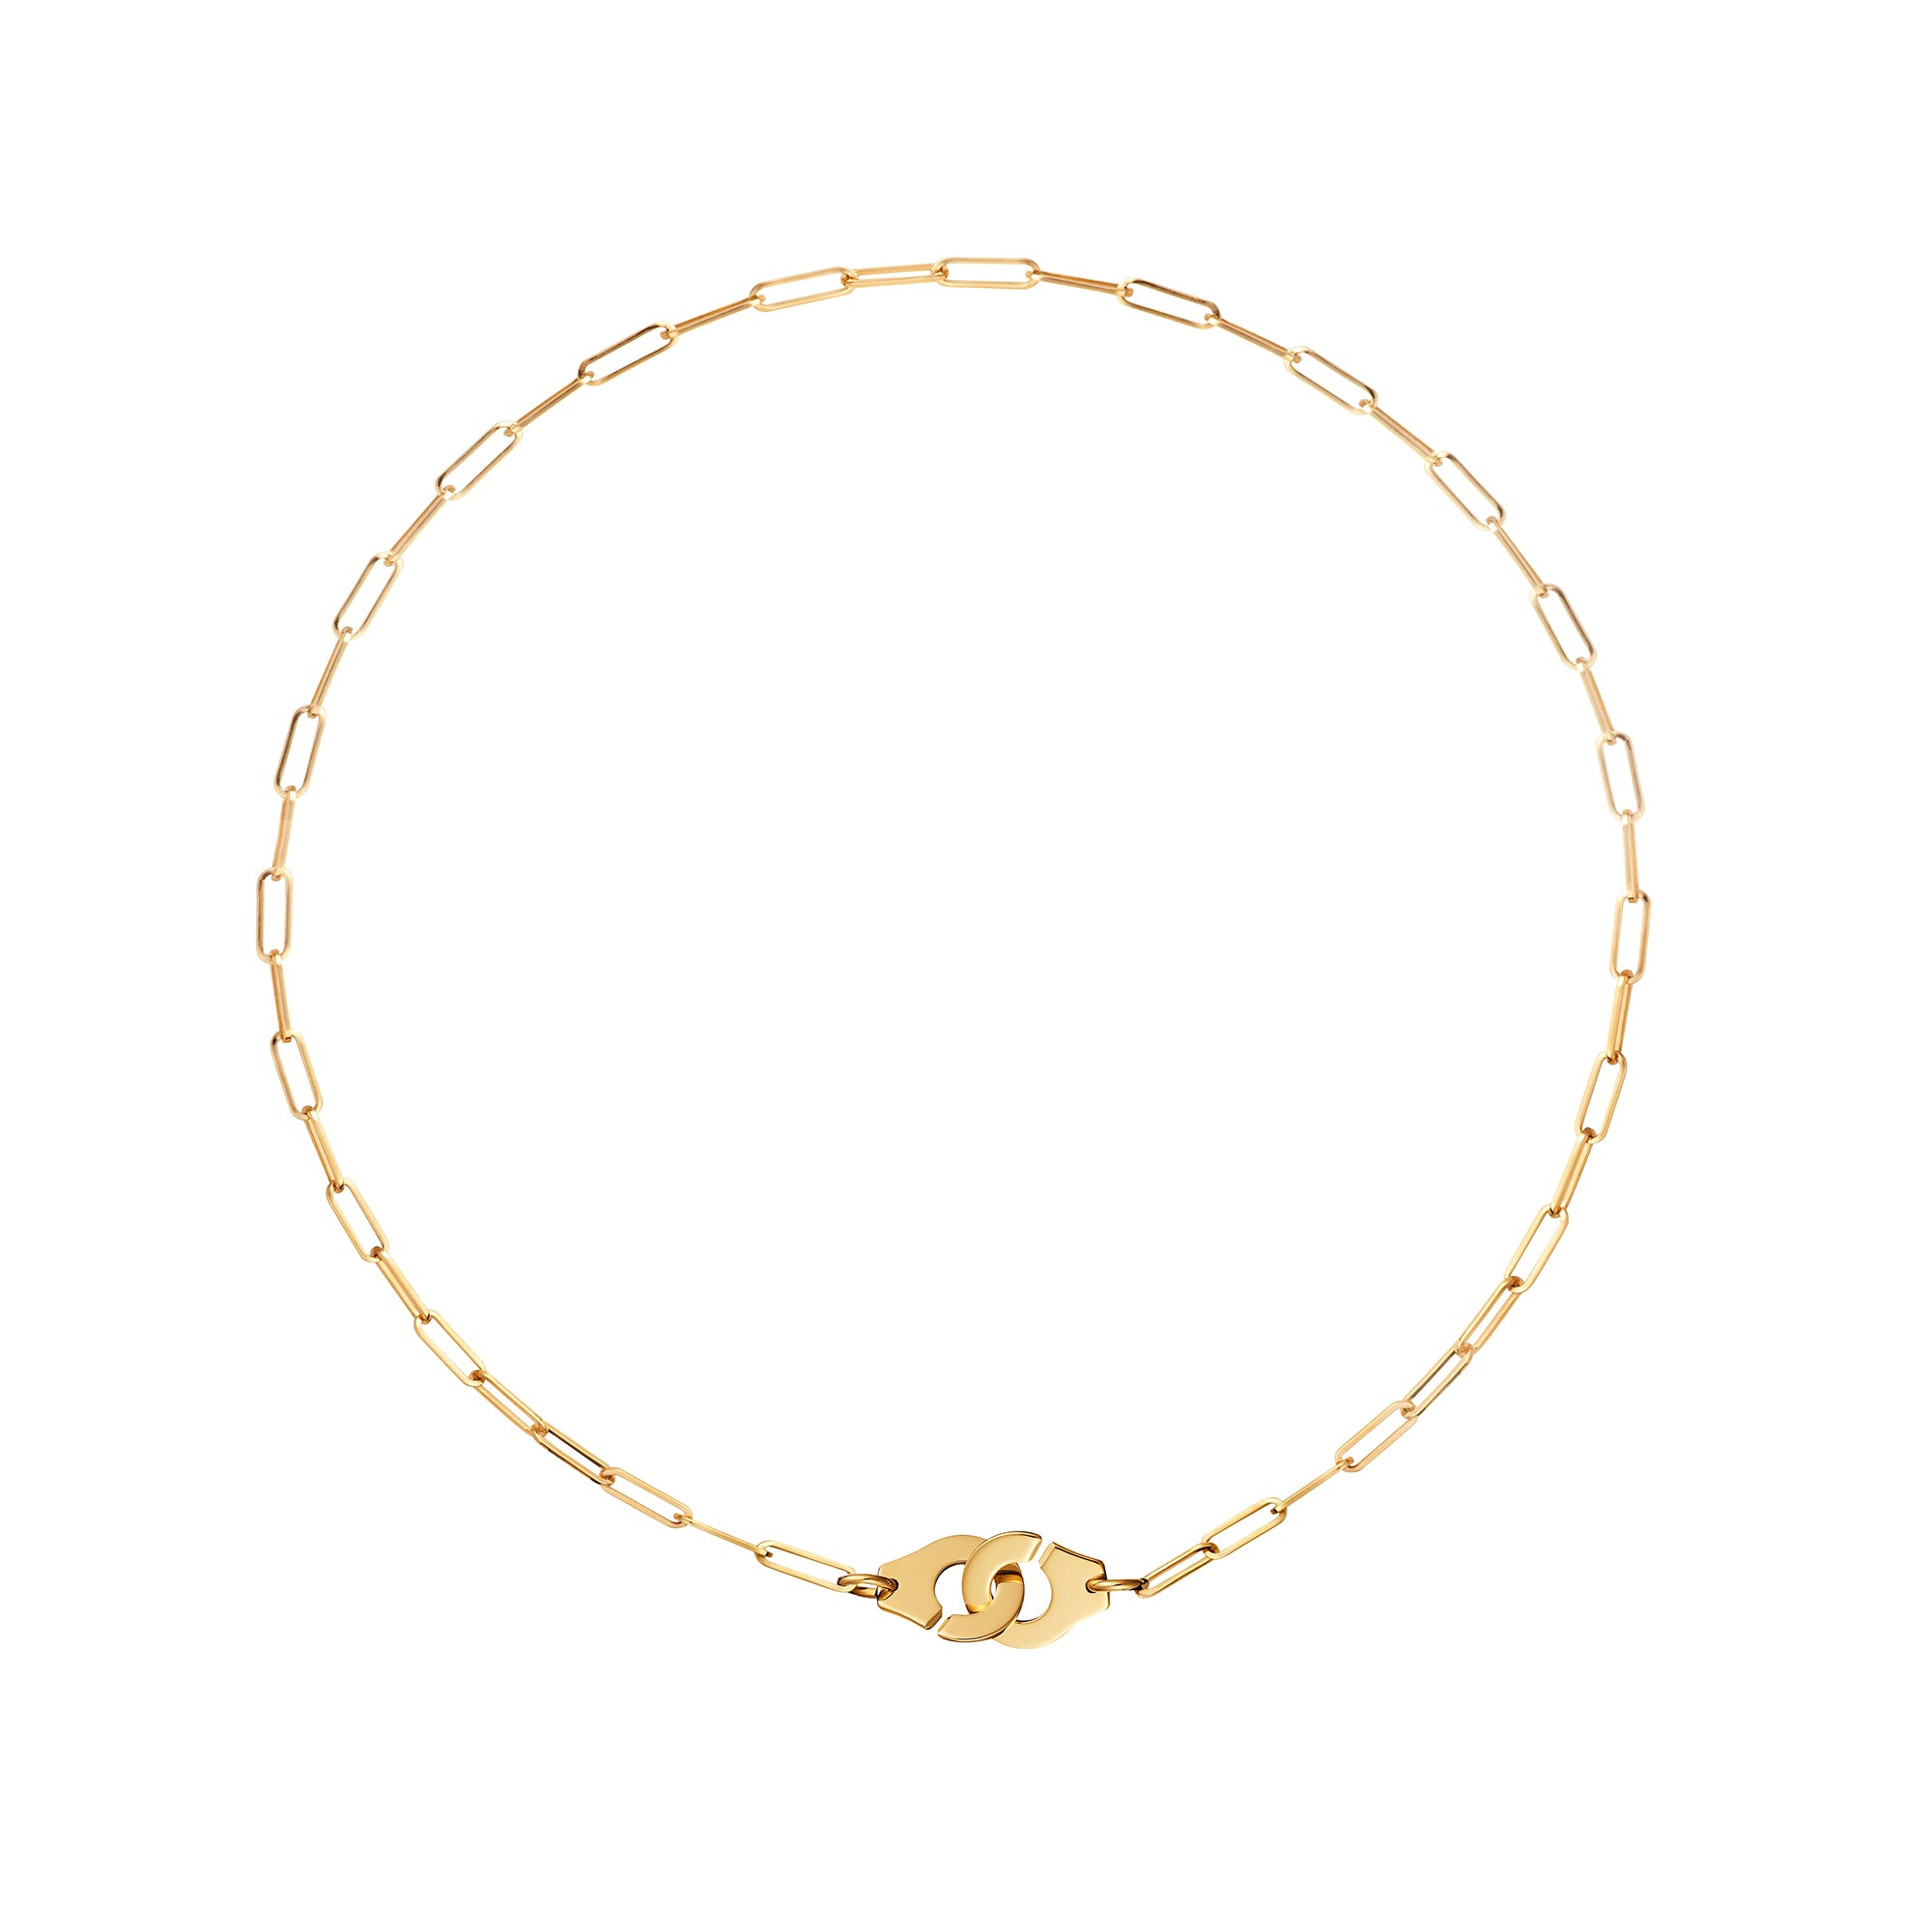 Menottes R10 Mixed Link Necklace - Dinh Van - Necklaces | Broken English Jewelry